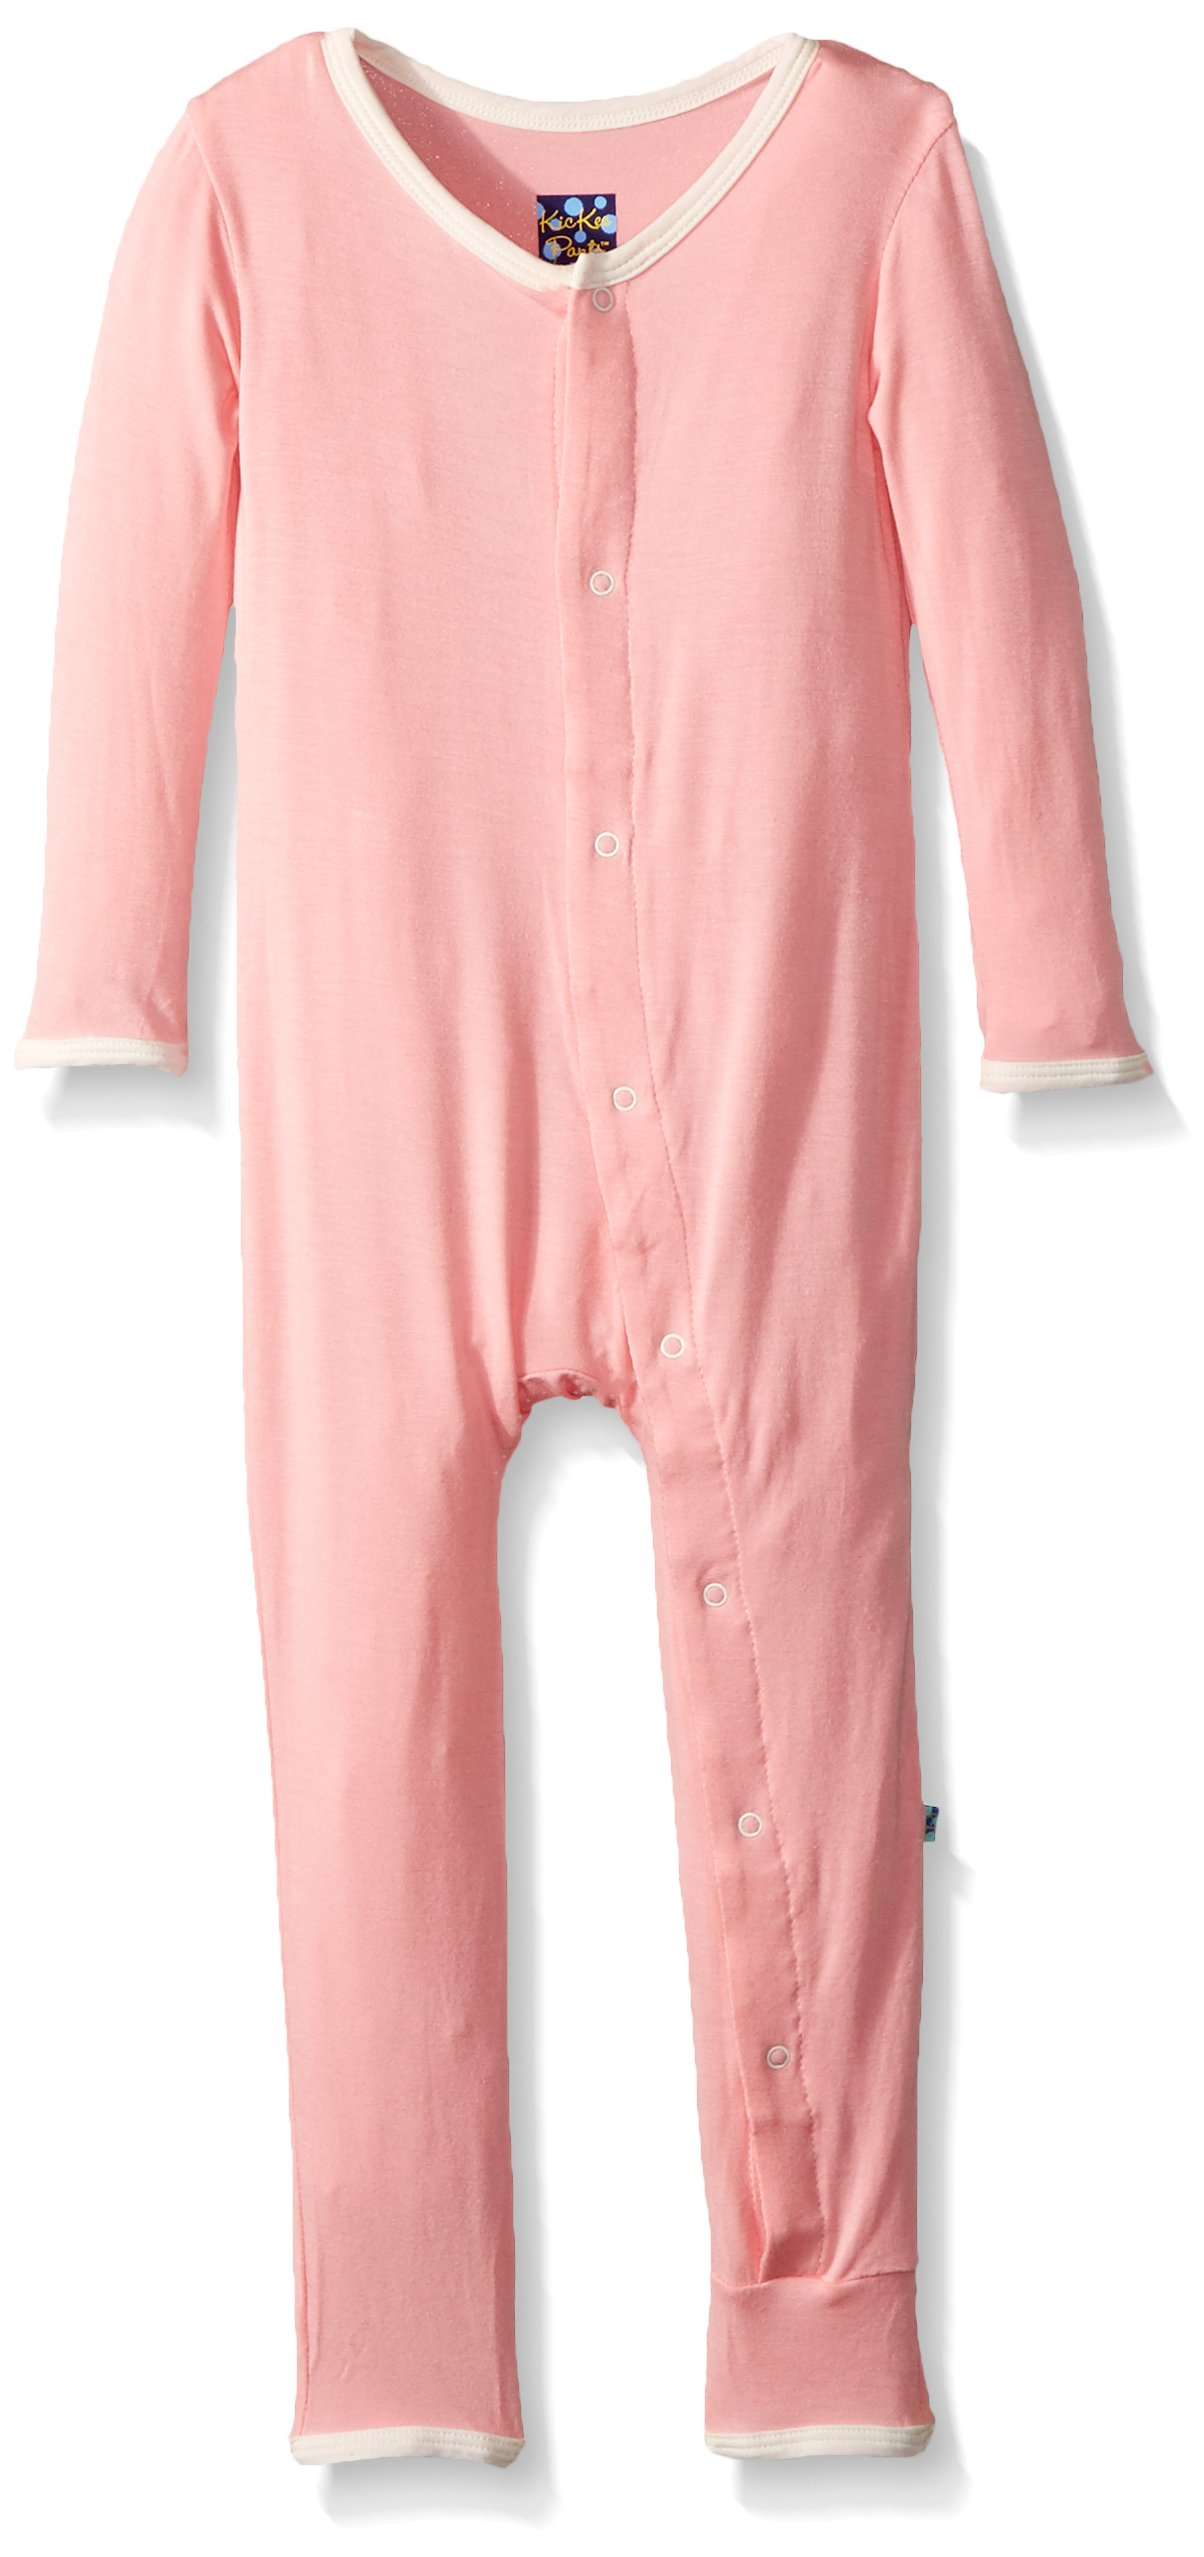 Kickee Pants Toddler Girls' Holiday Fitted Applique Coverall, Lotus I Love Mom, 4T